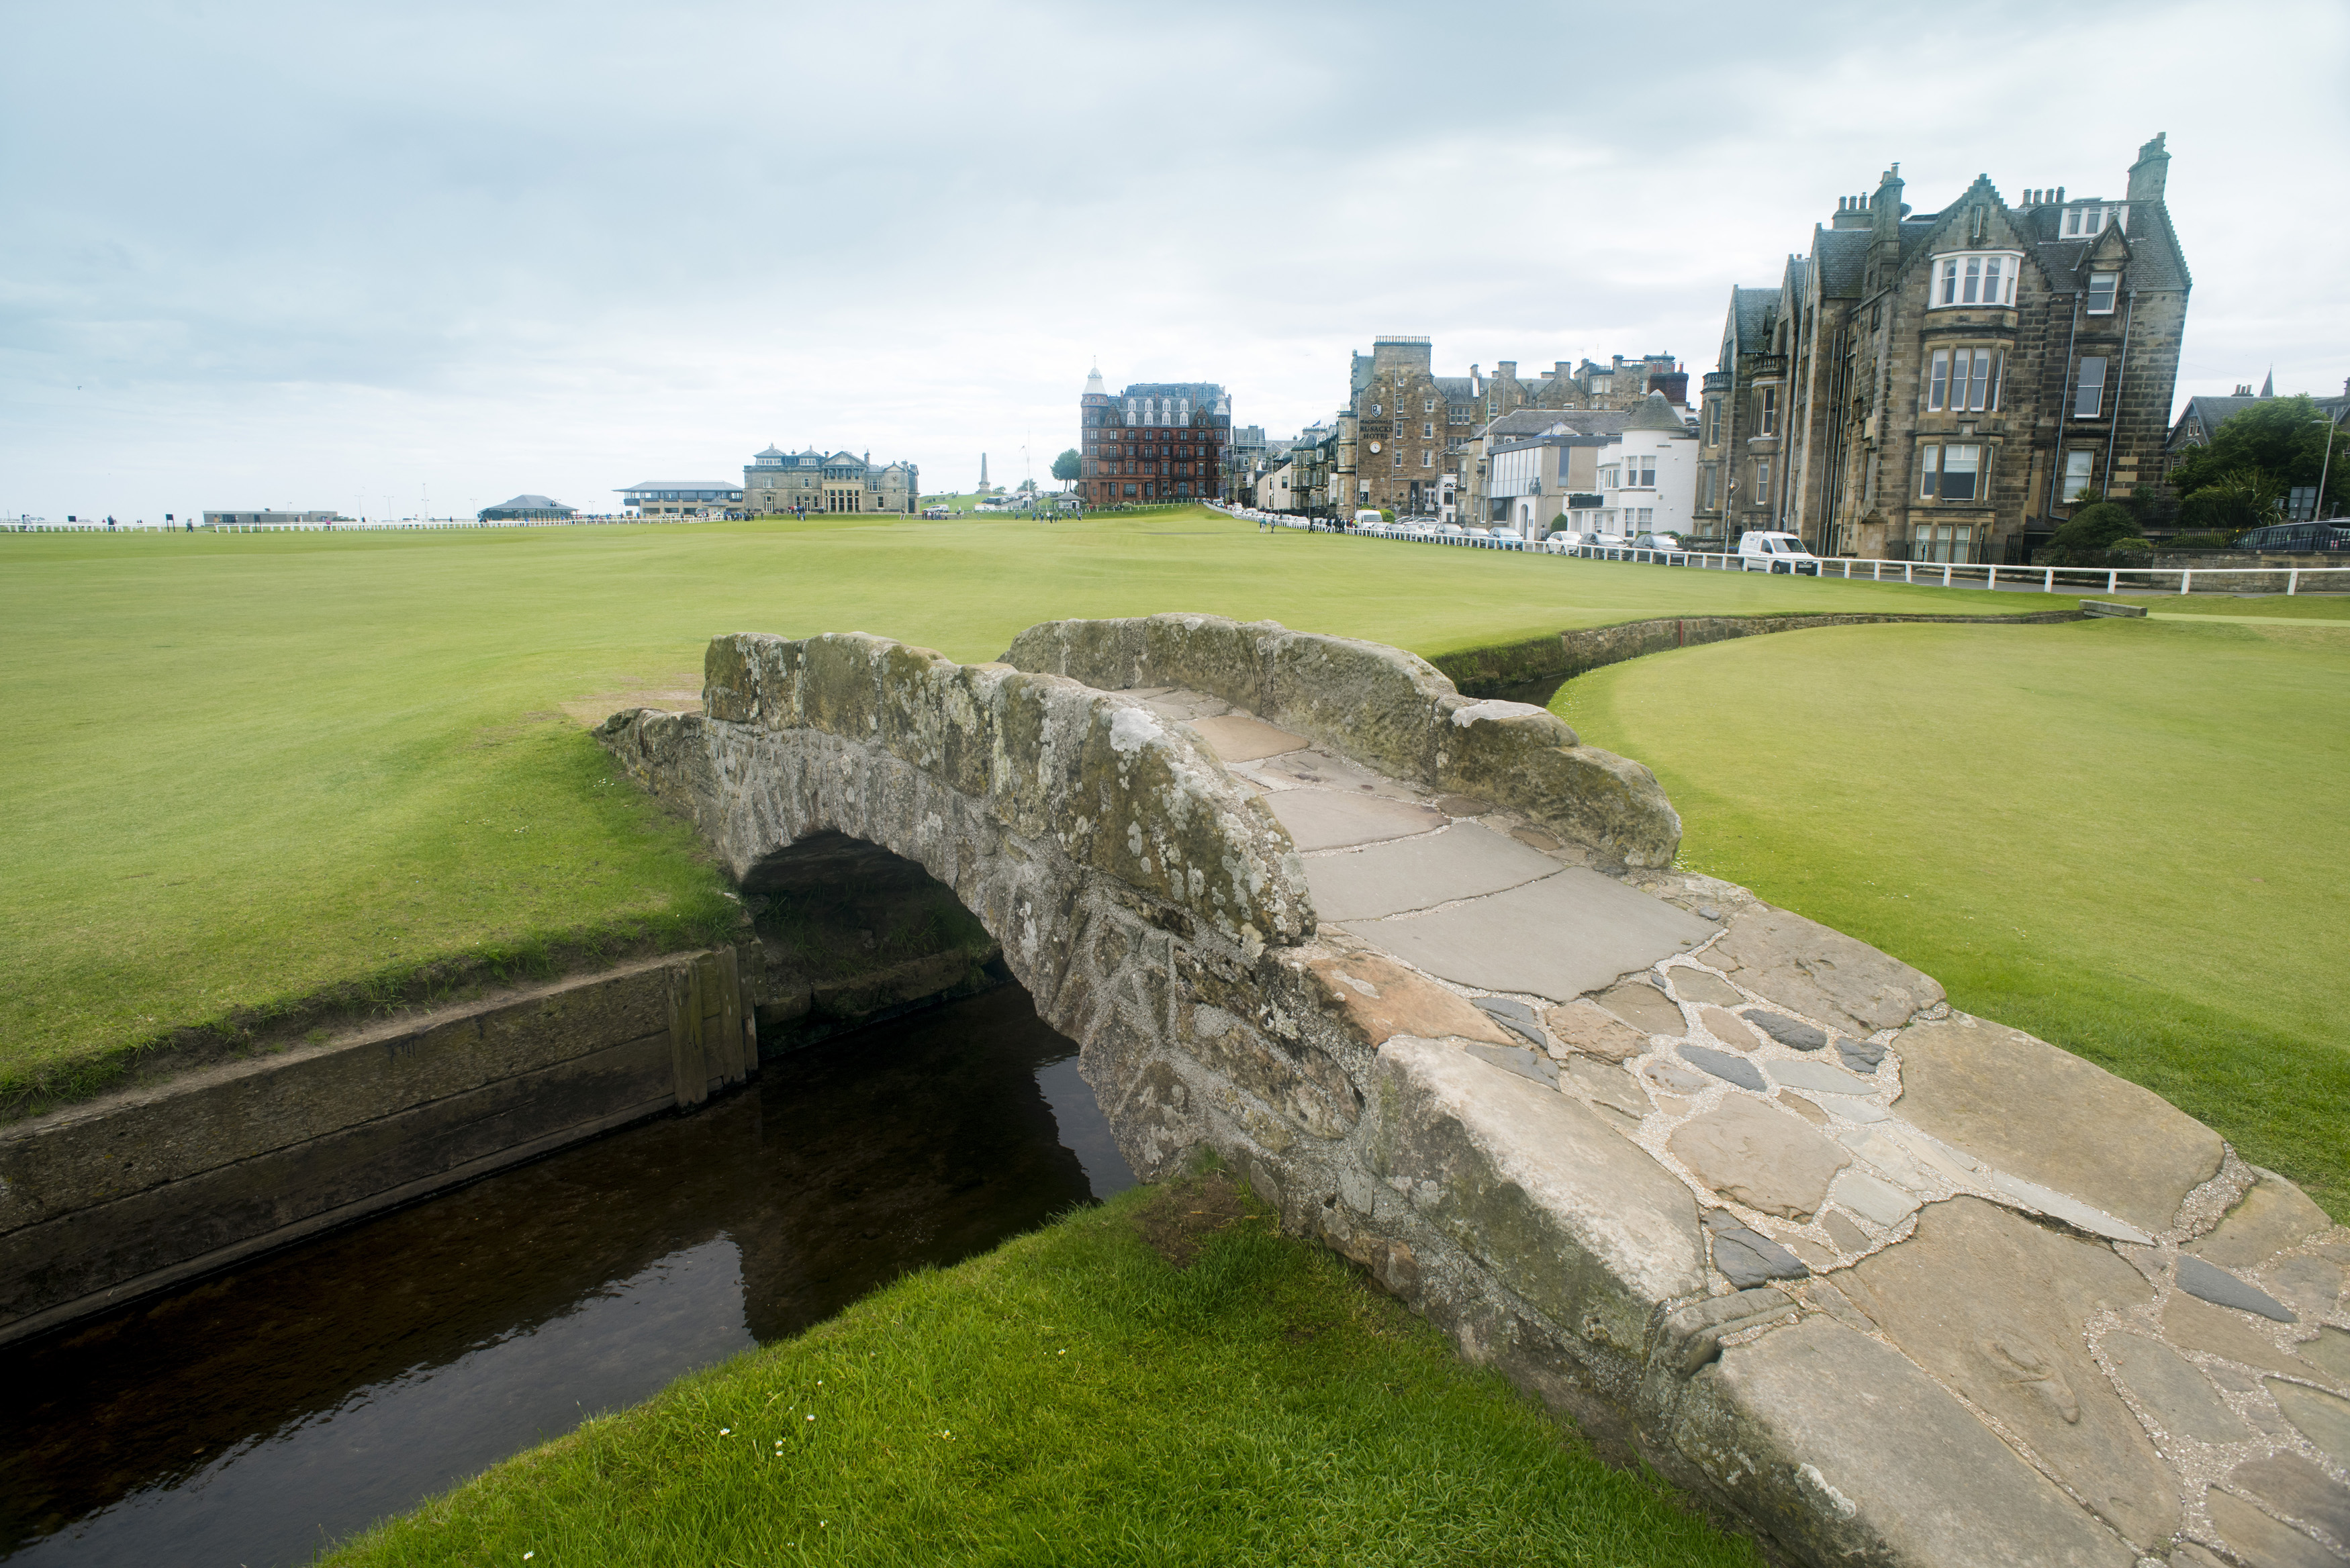 Green grass covered golf course with little stone Swilken bridge in Saint Andrews, Scotland